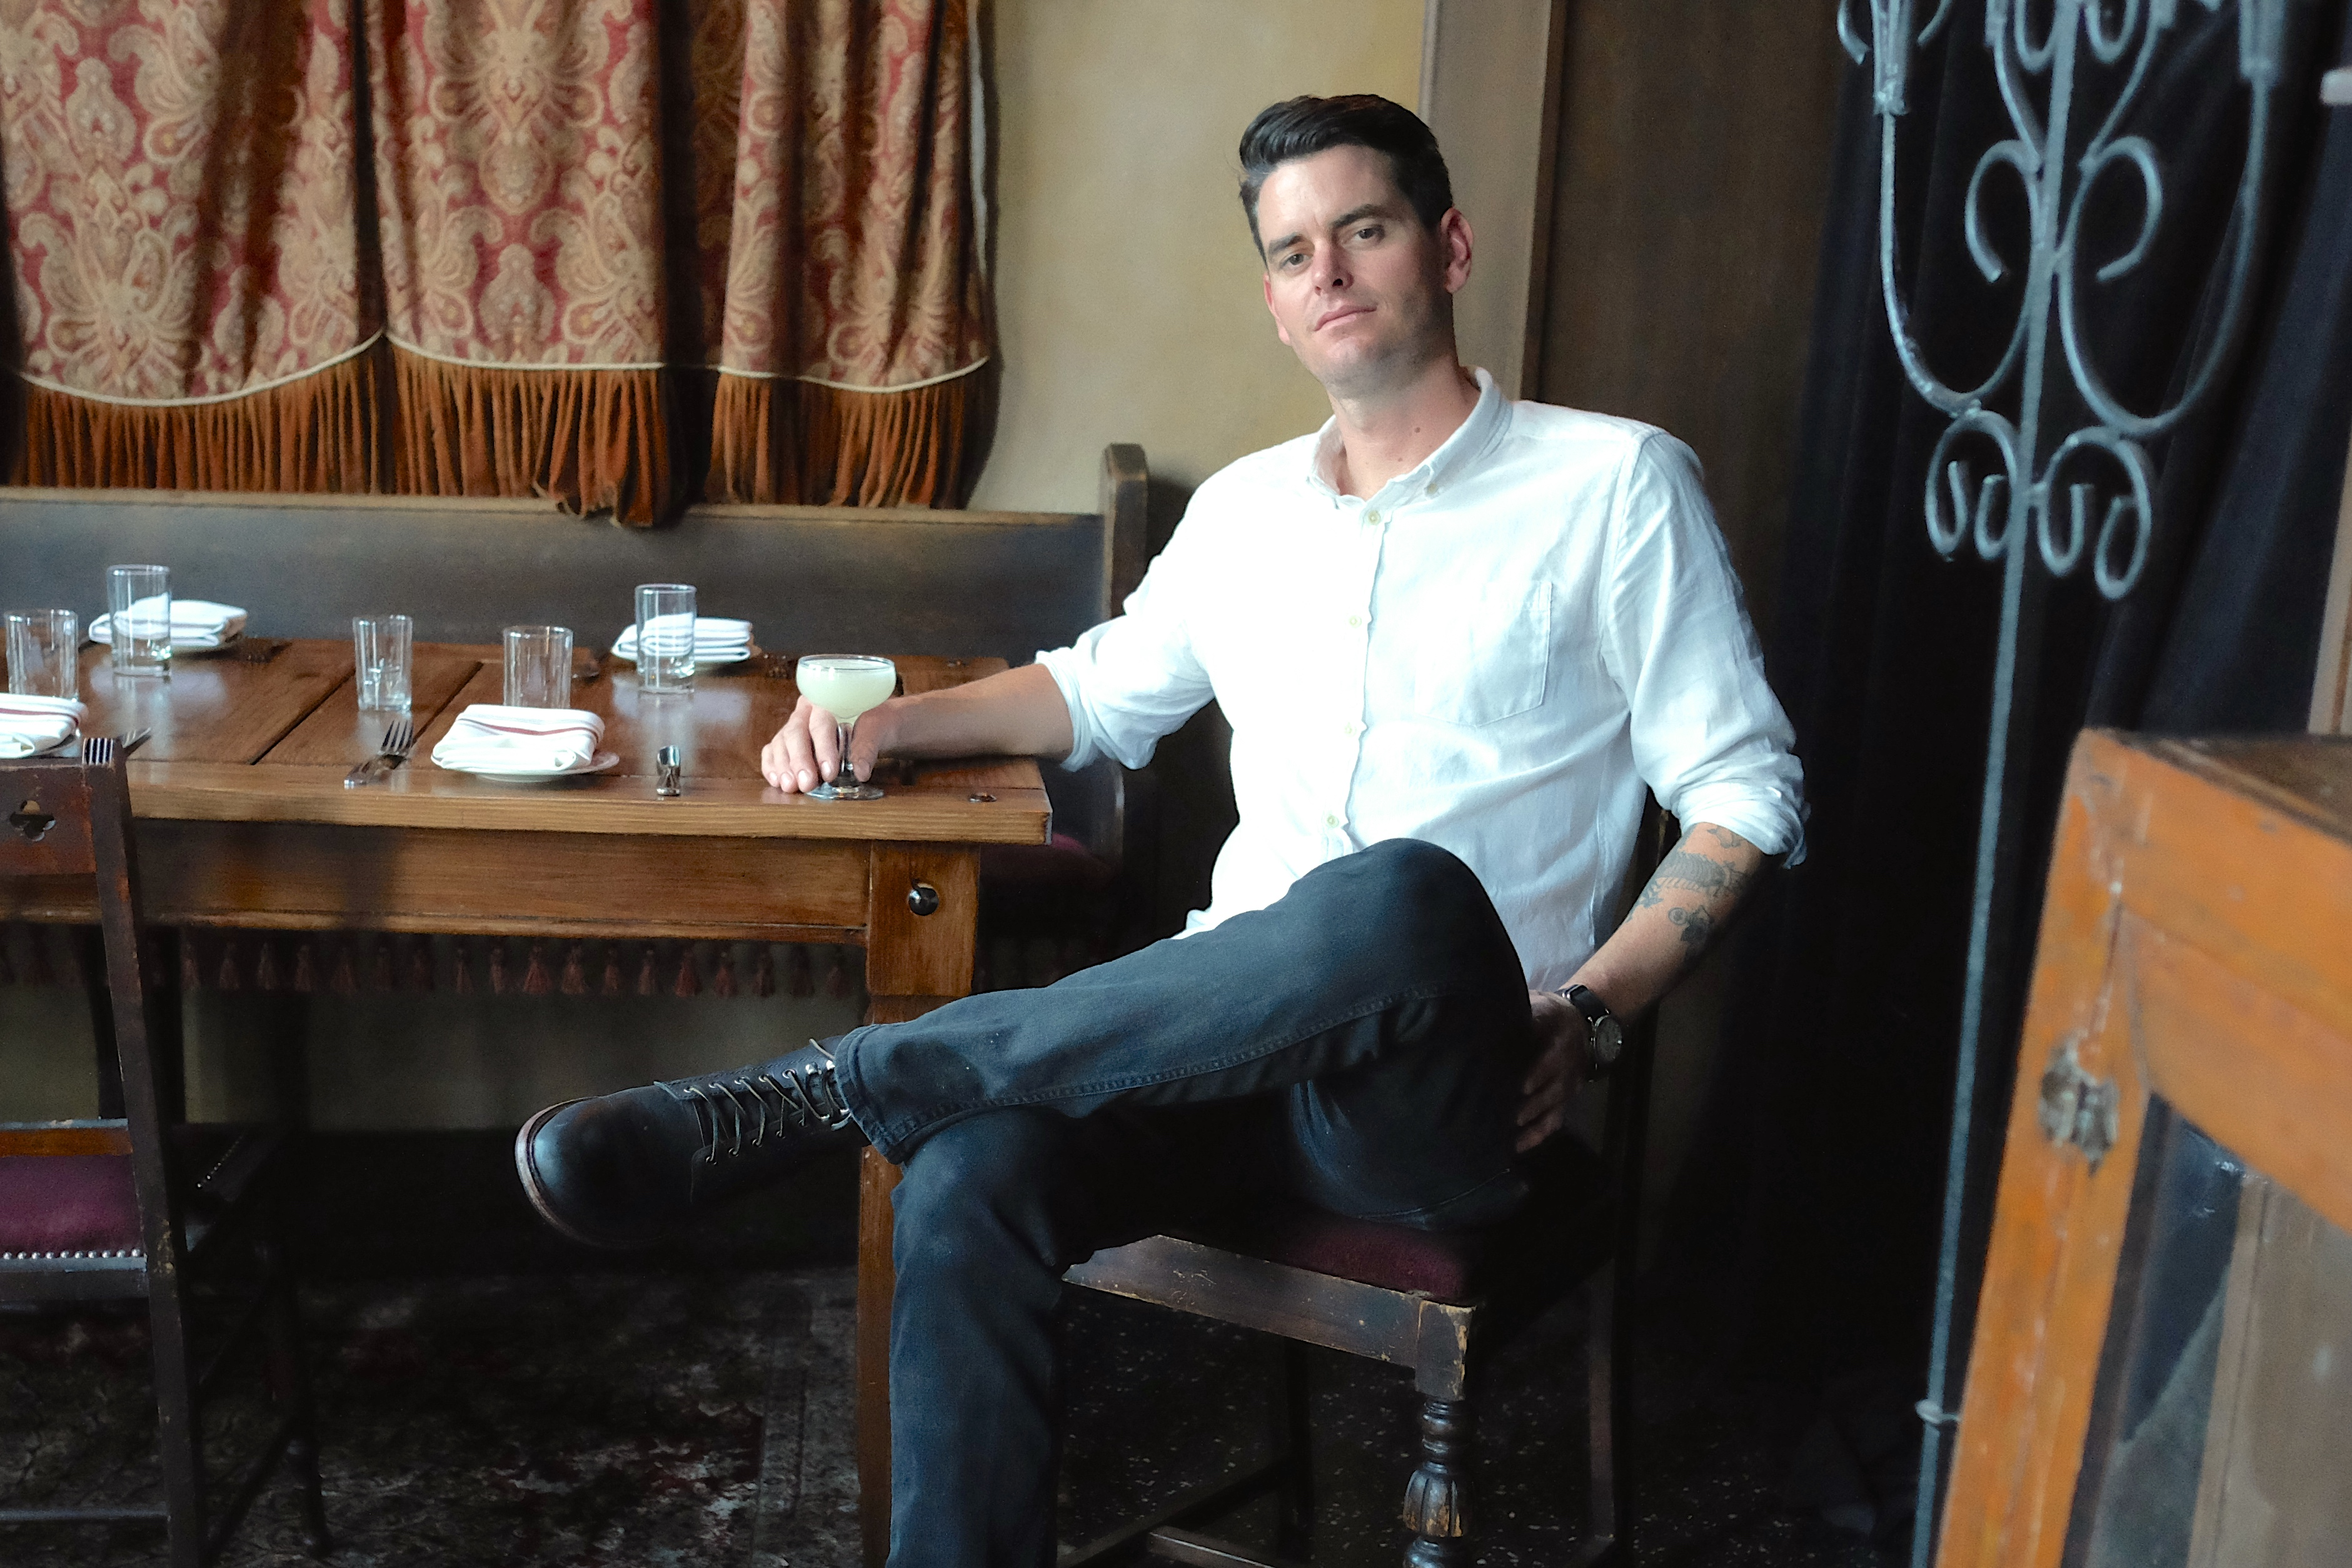 Avery Underhill at Butchers & Barbers Has the Perfect Low-Key Bar on His Nights Off